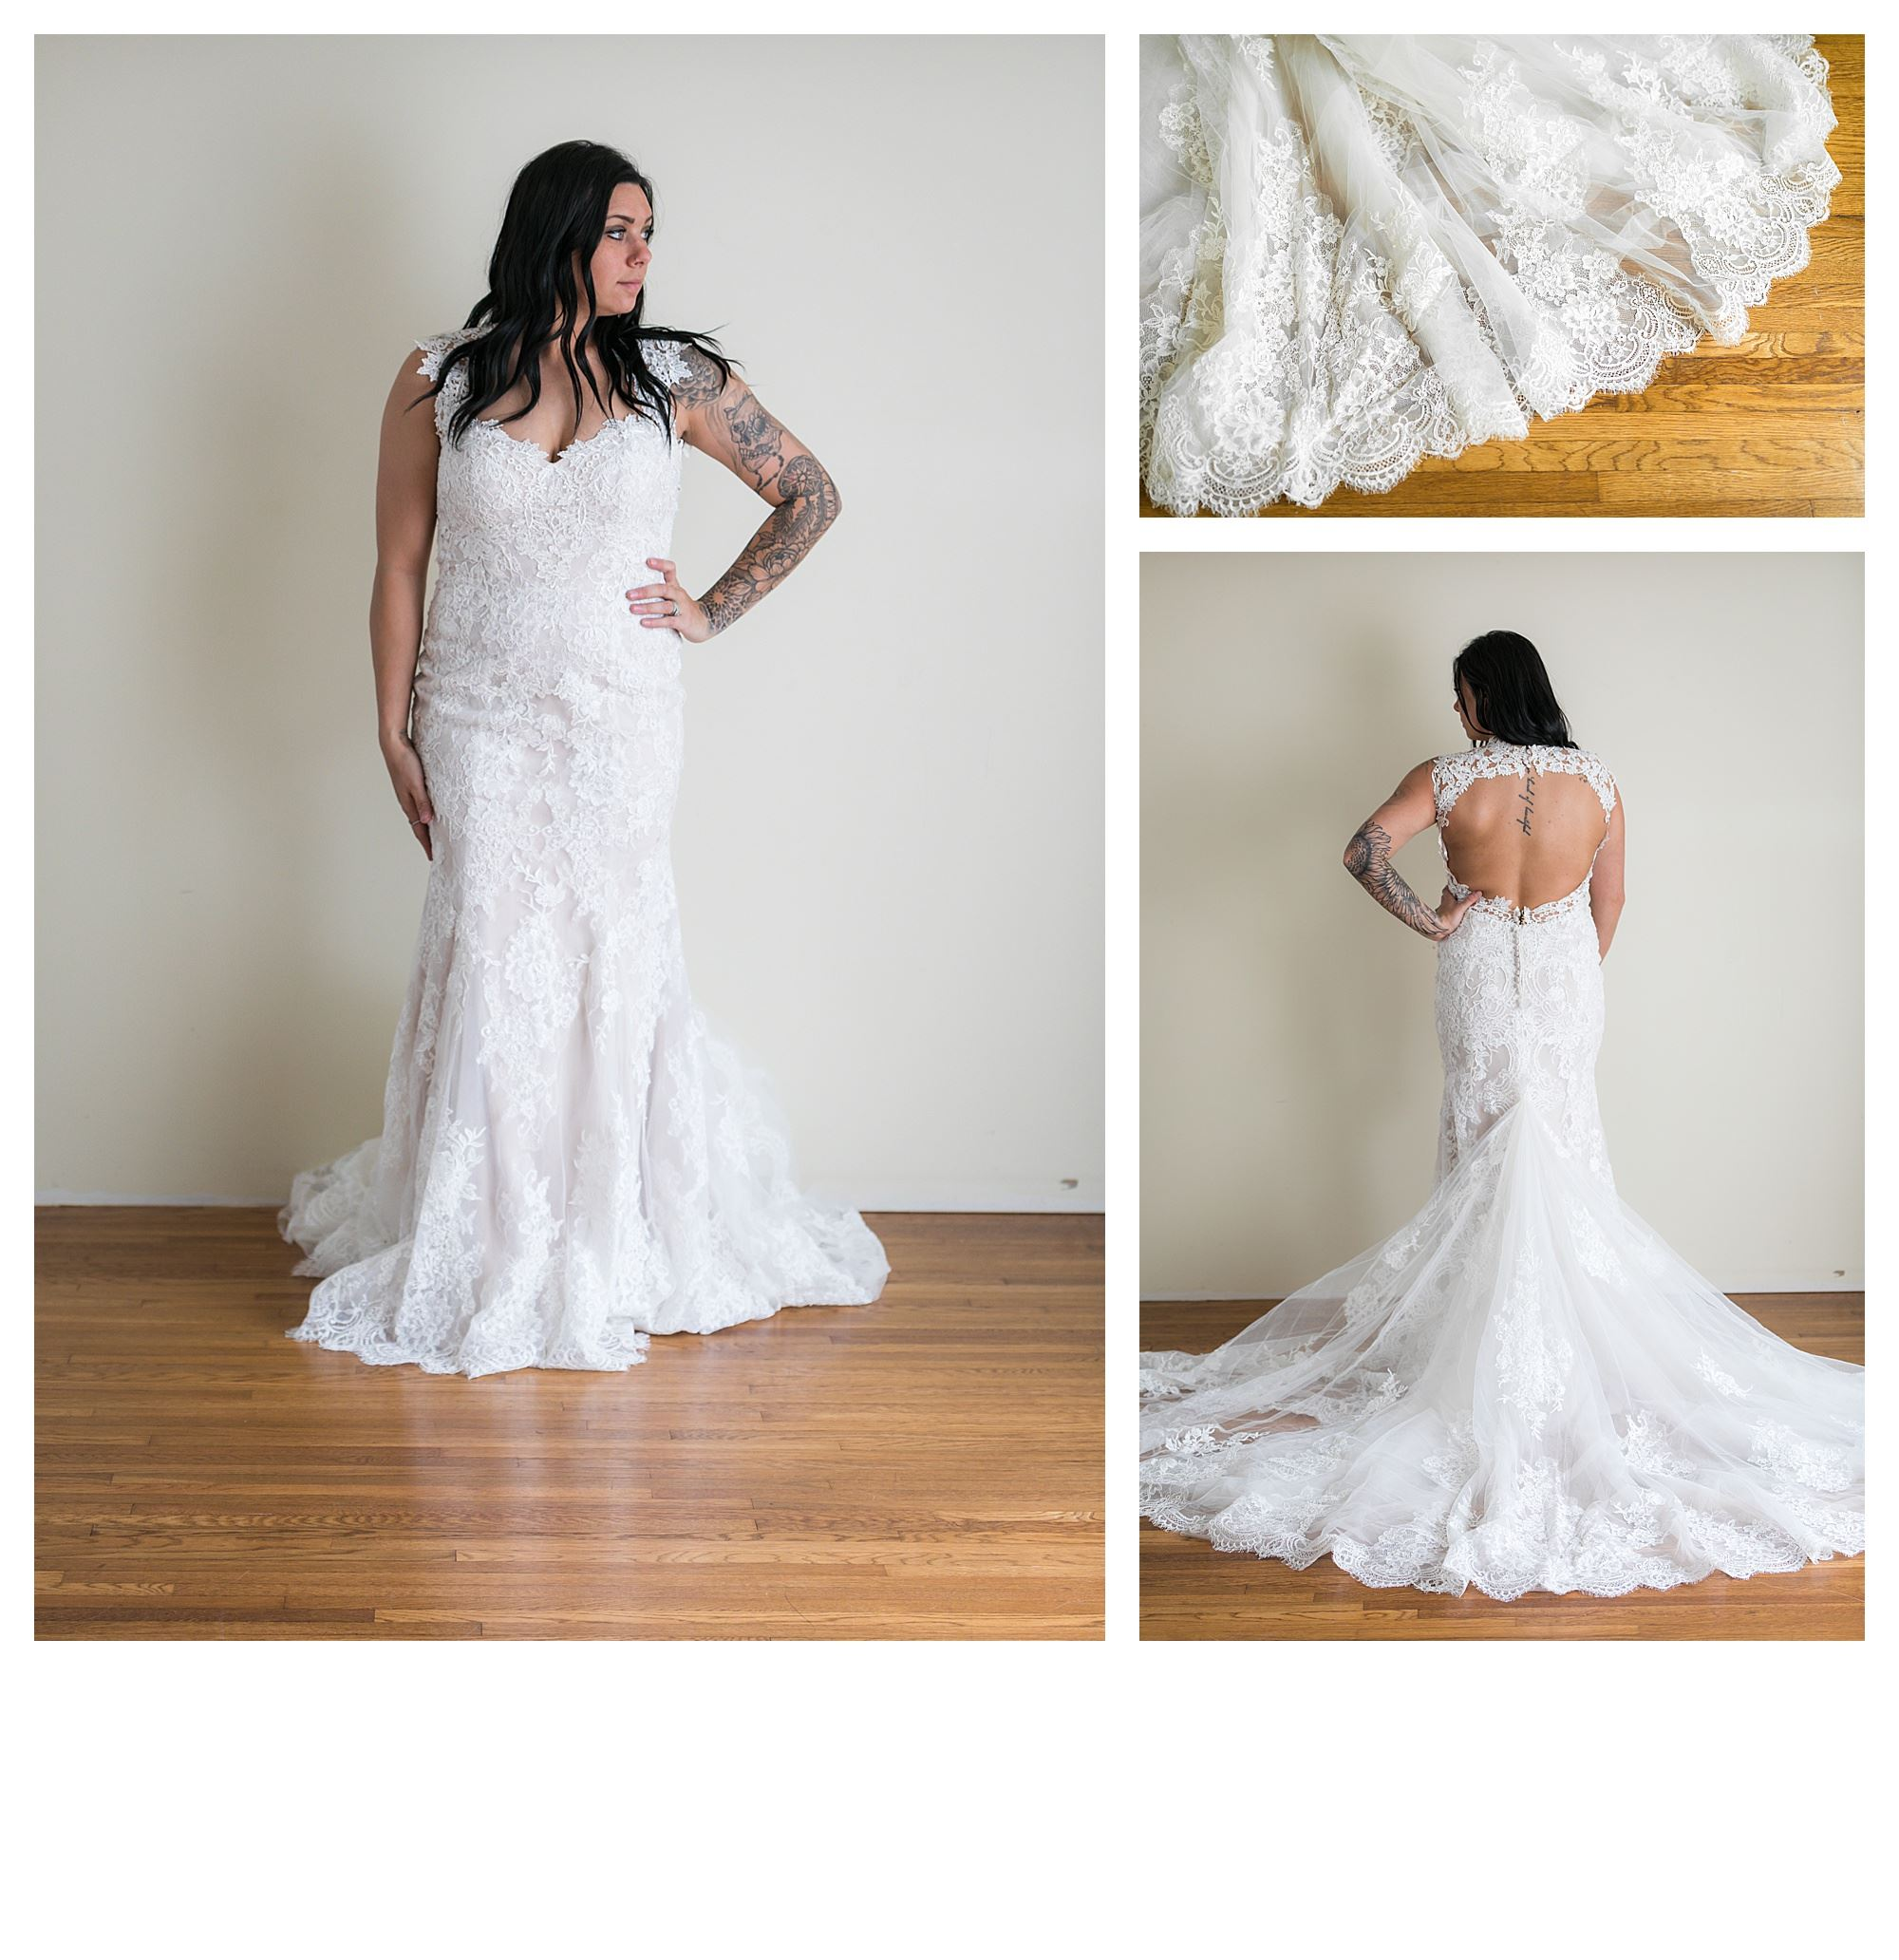 Shaylee - Size 12 - Nude/Ivory - Originally priced $2399 - Sample box price $1599